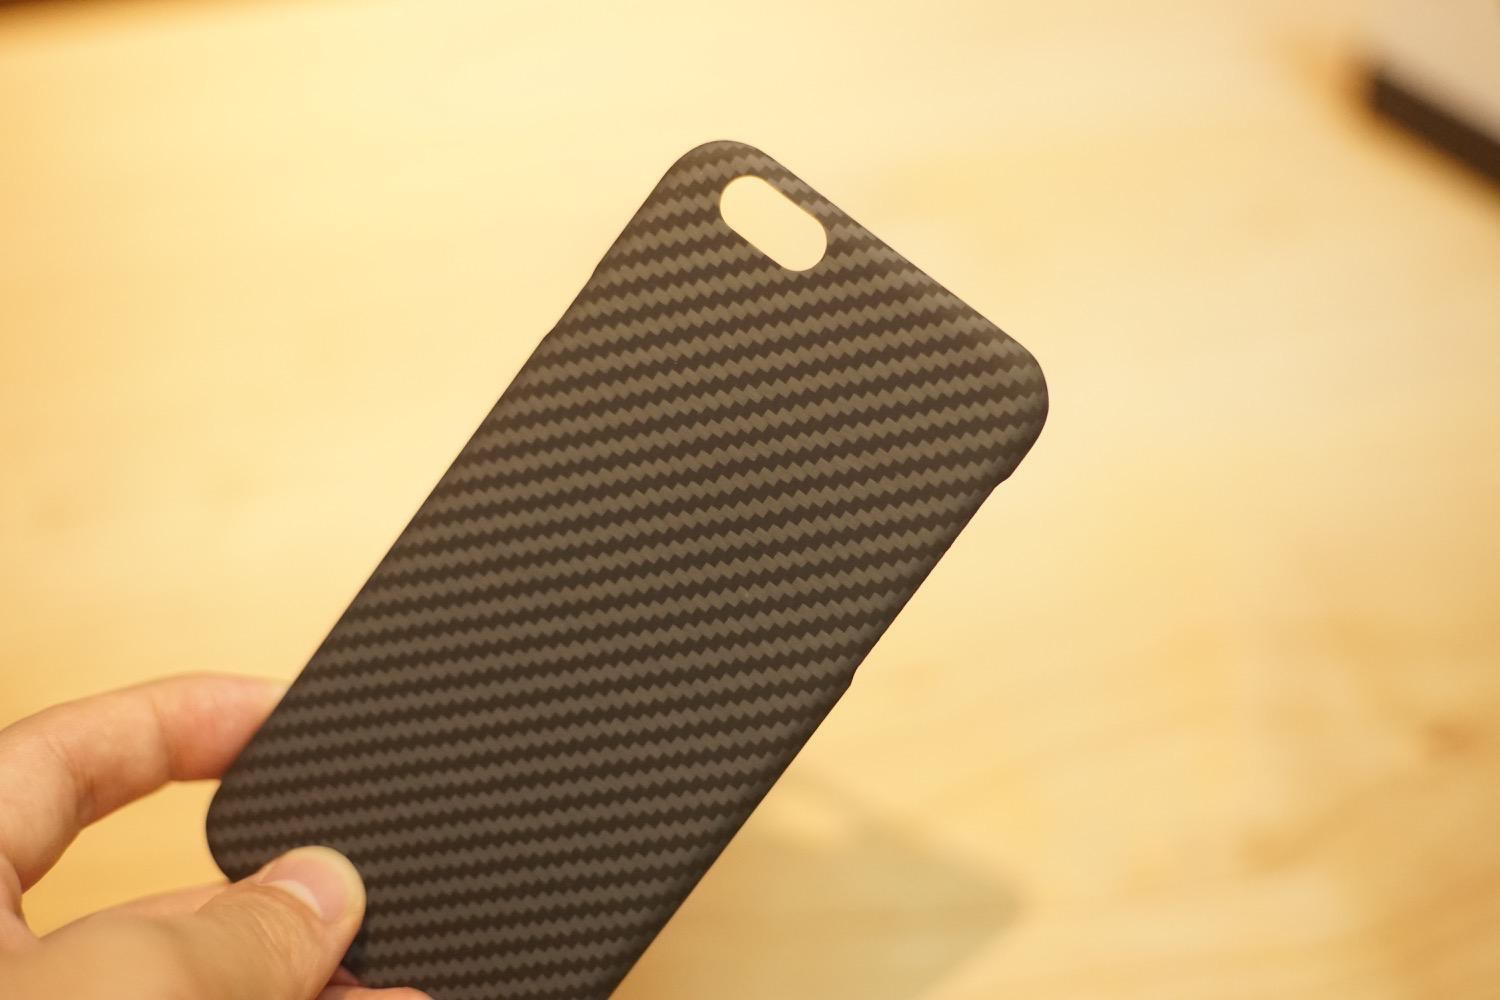 Pitaka iphone6 case13